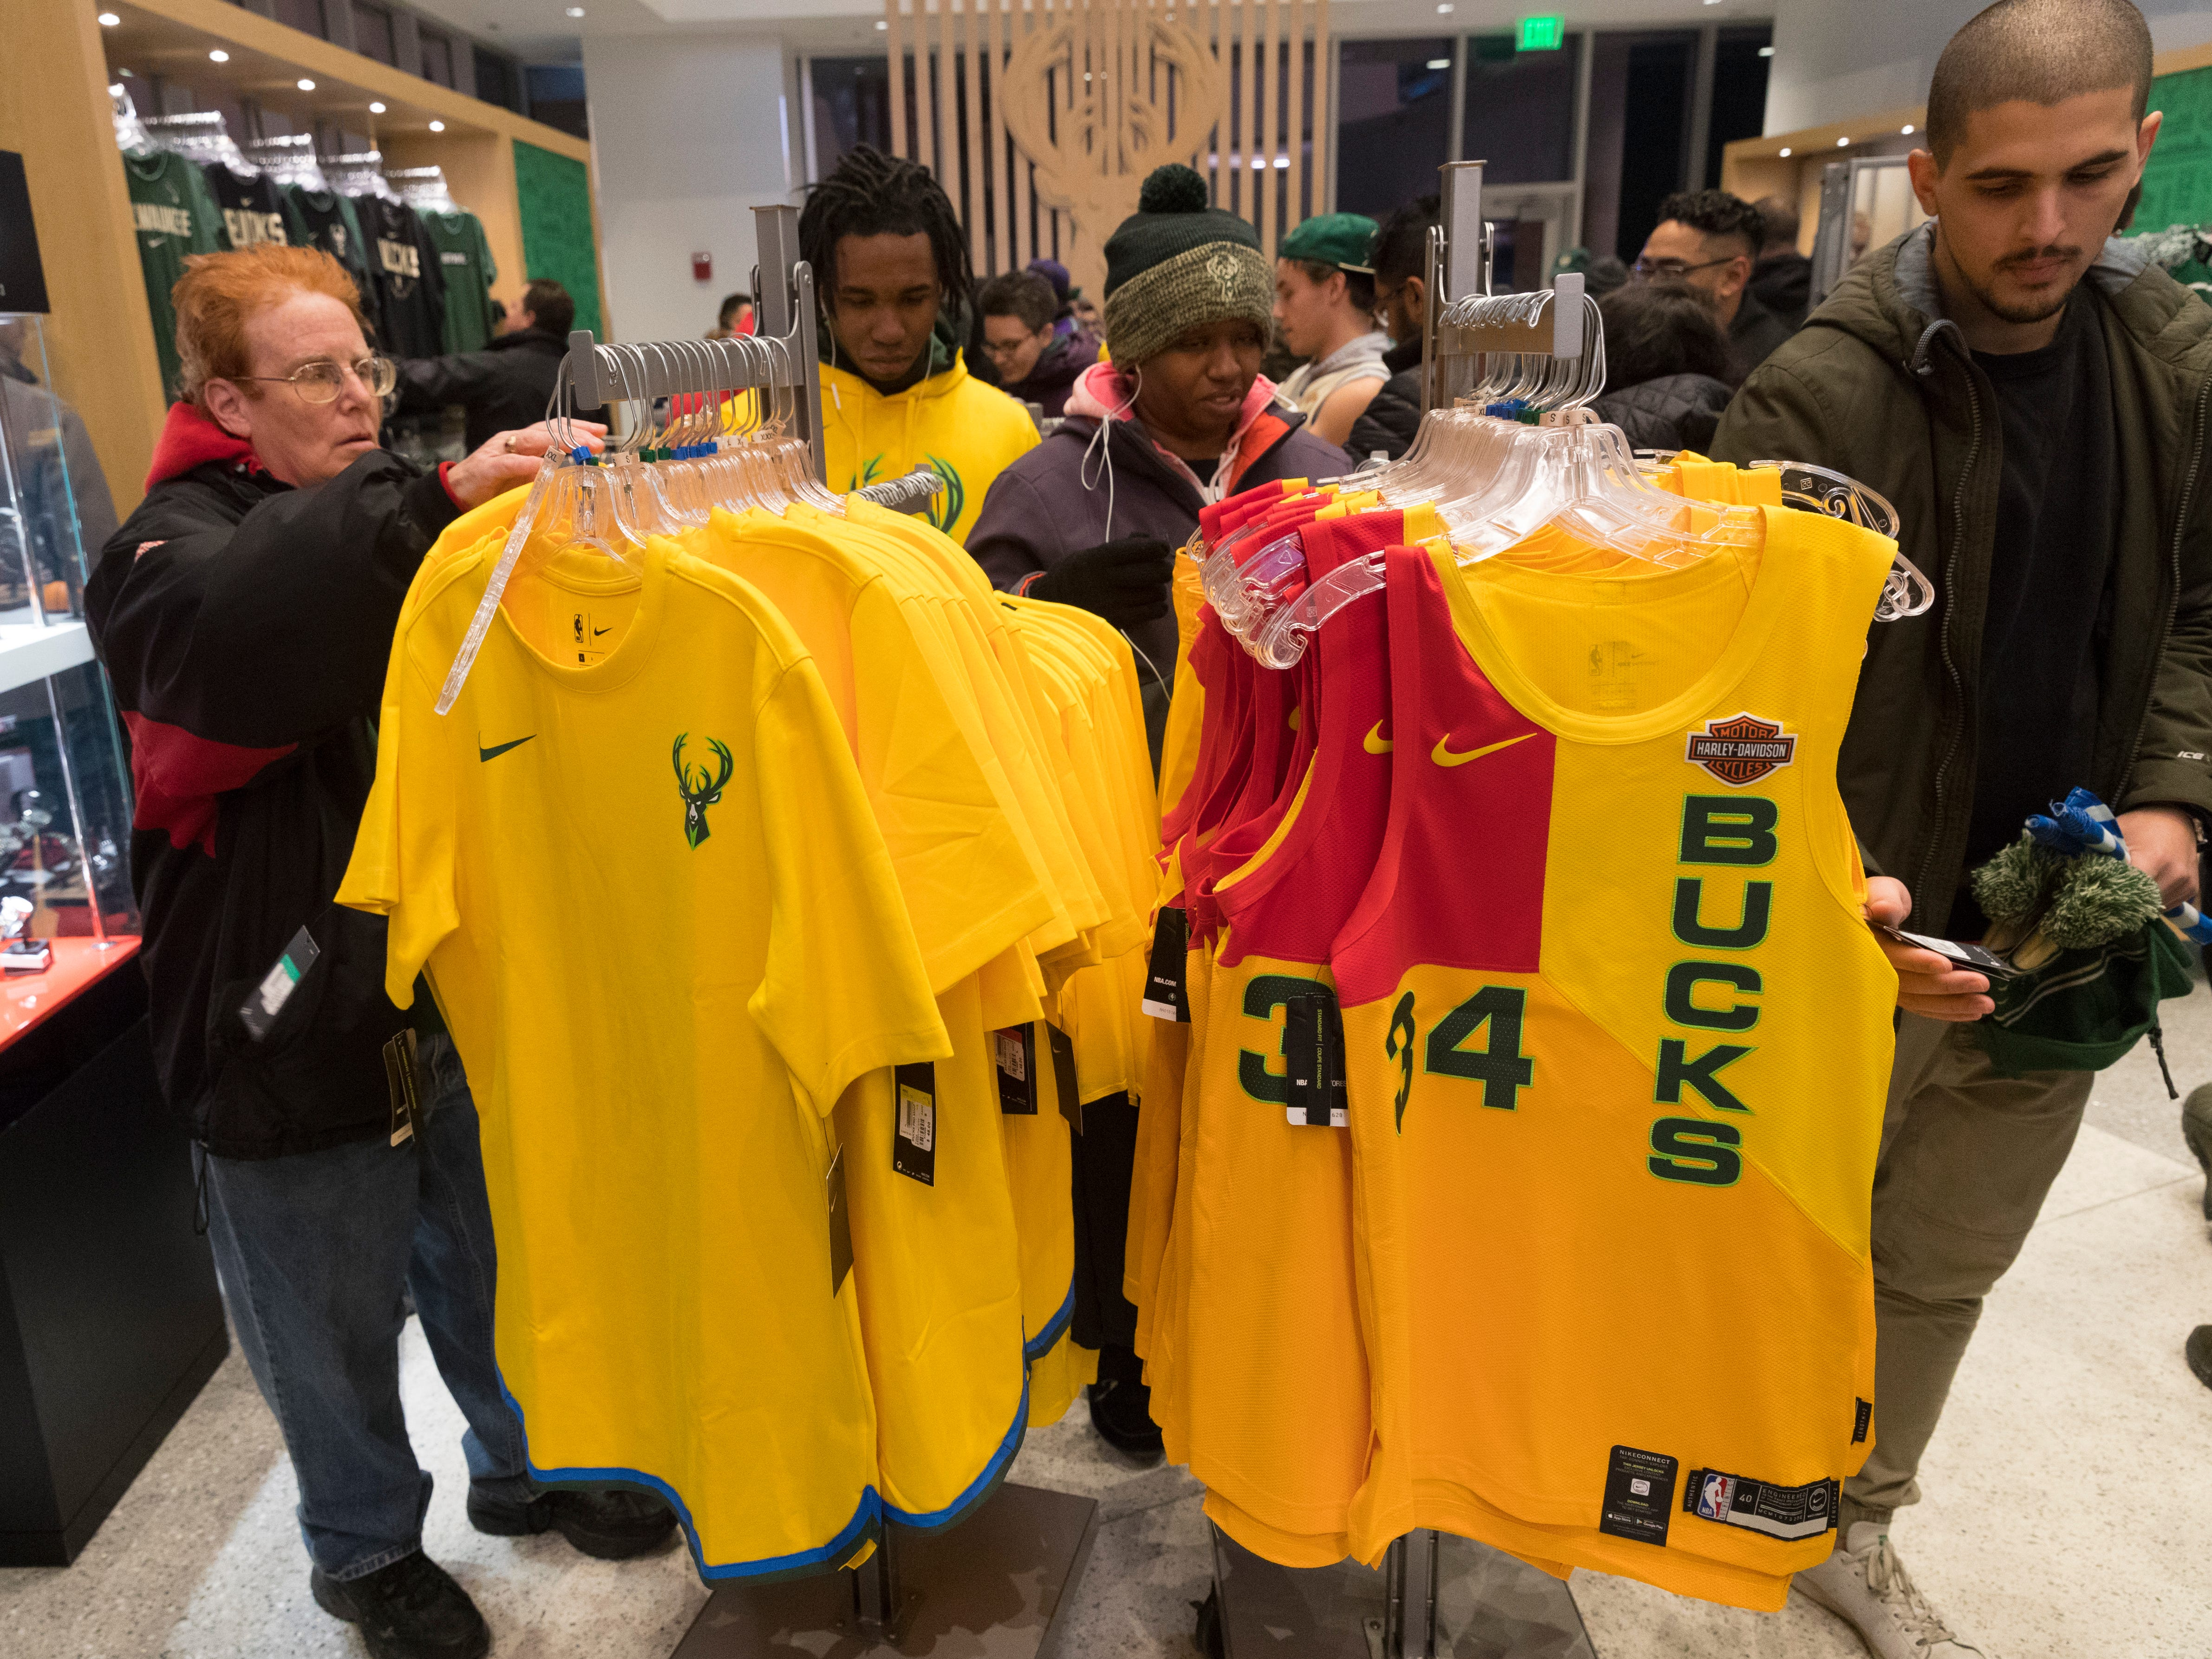 Fans shop for souvenirs in the Milwaukee Bucks Pro Shop before the  game against the Portland Trail Blazers. New ownership noticed the lack of Bucks gear on fans around town and revamped their pro shop strategy.